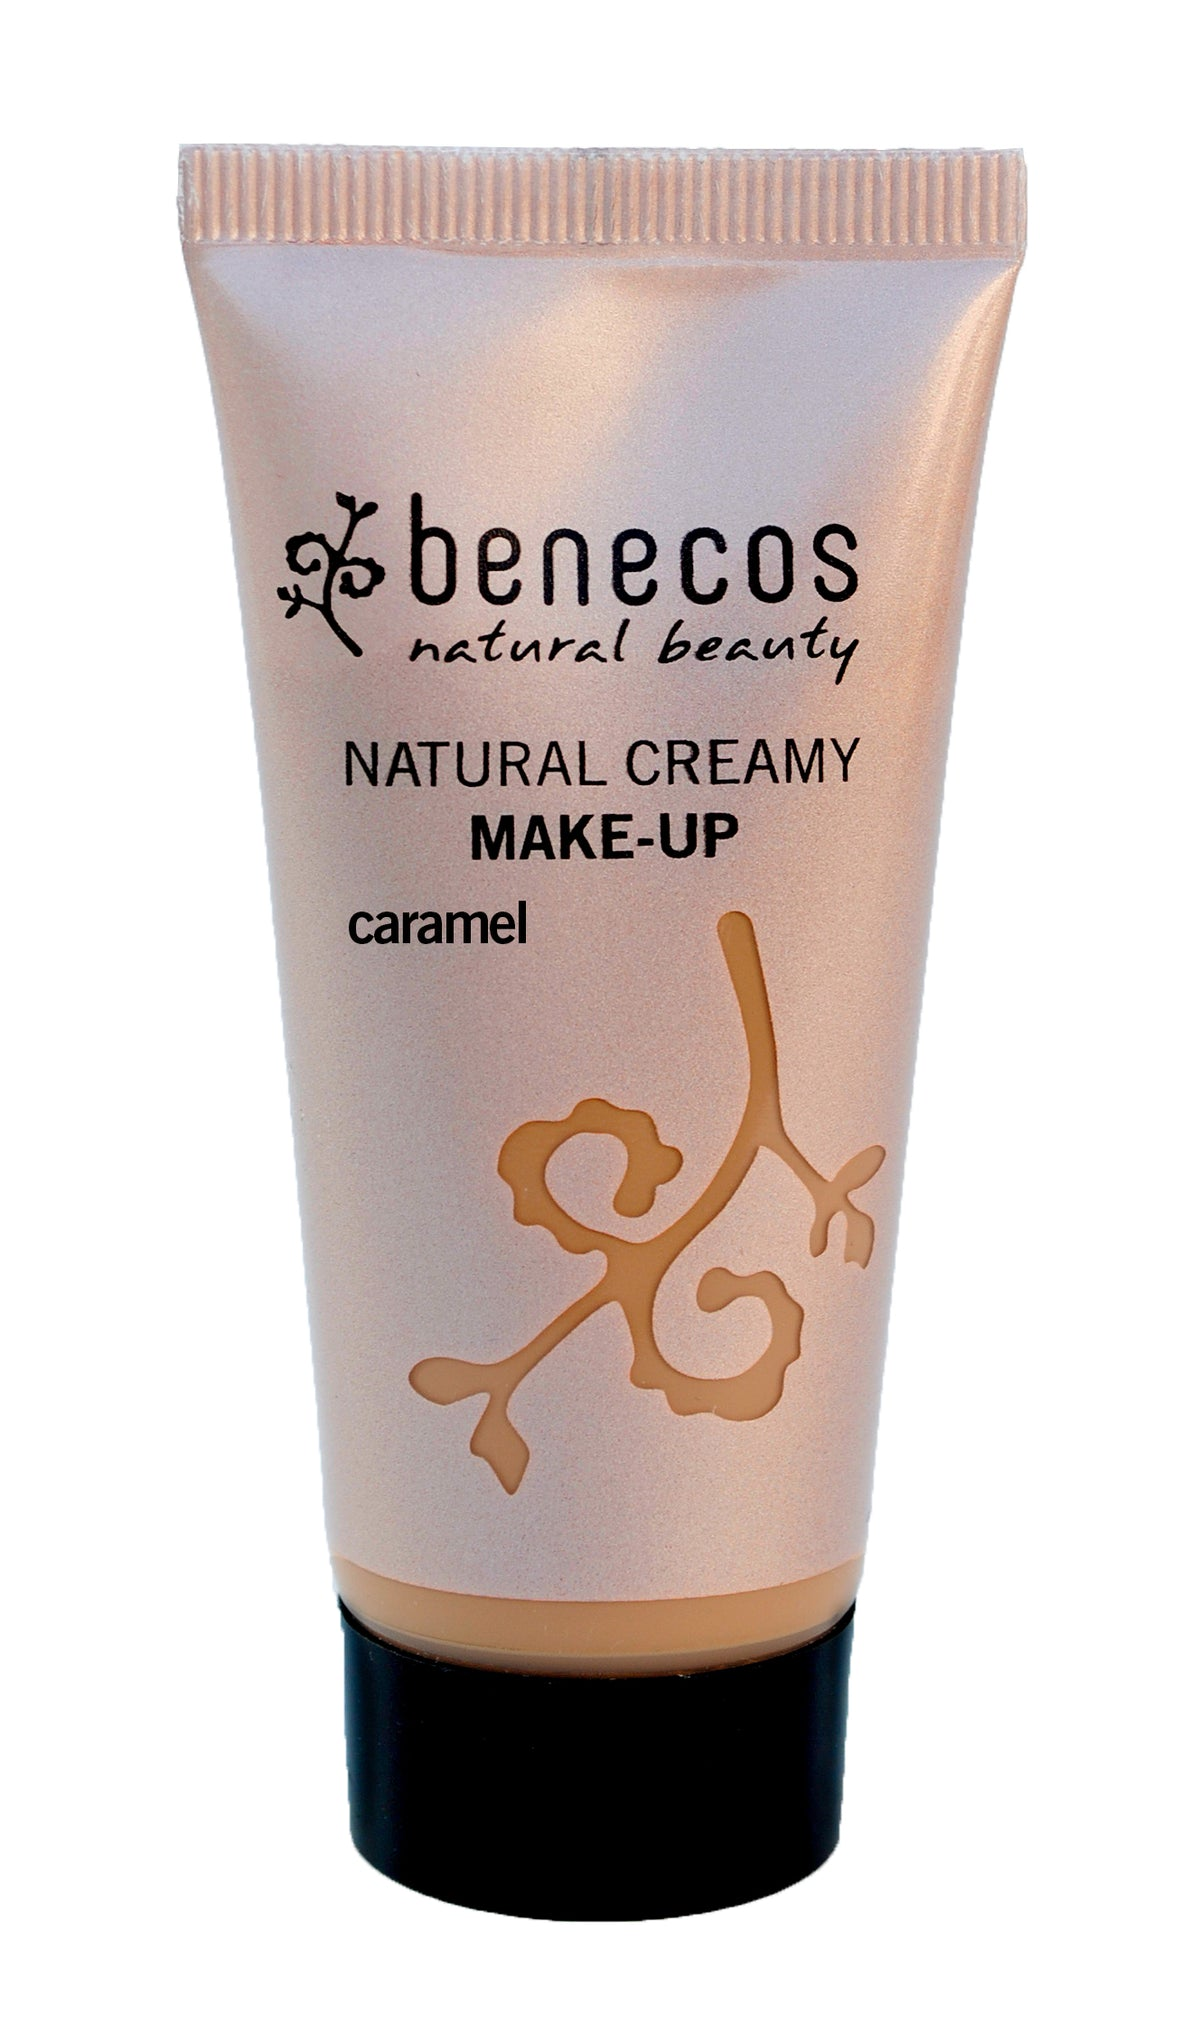 Benecos Natural Creamy Make-Up - Foundation (30ml) More Colours +